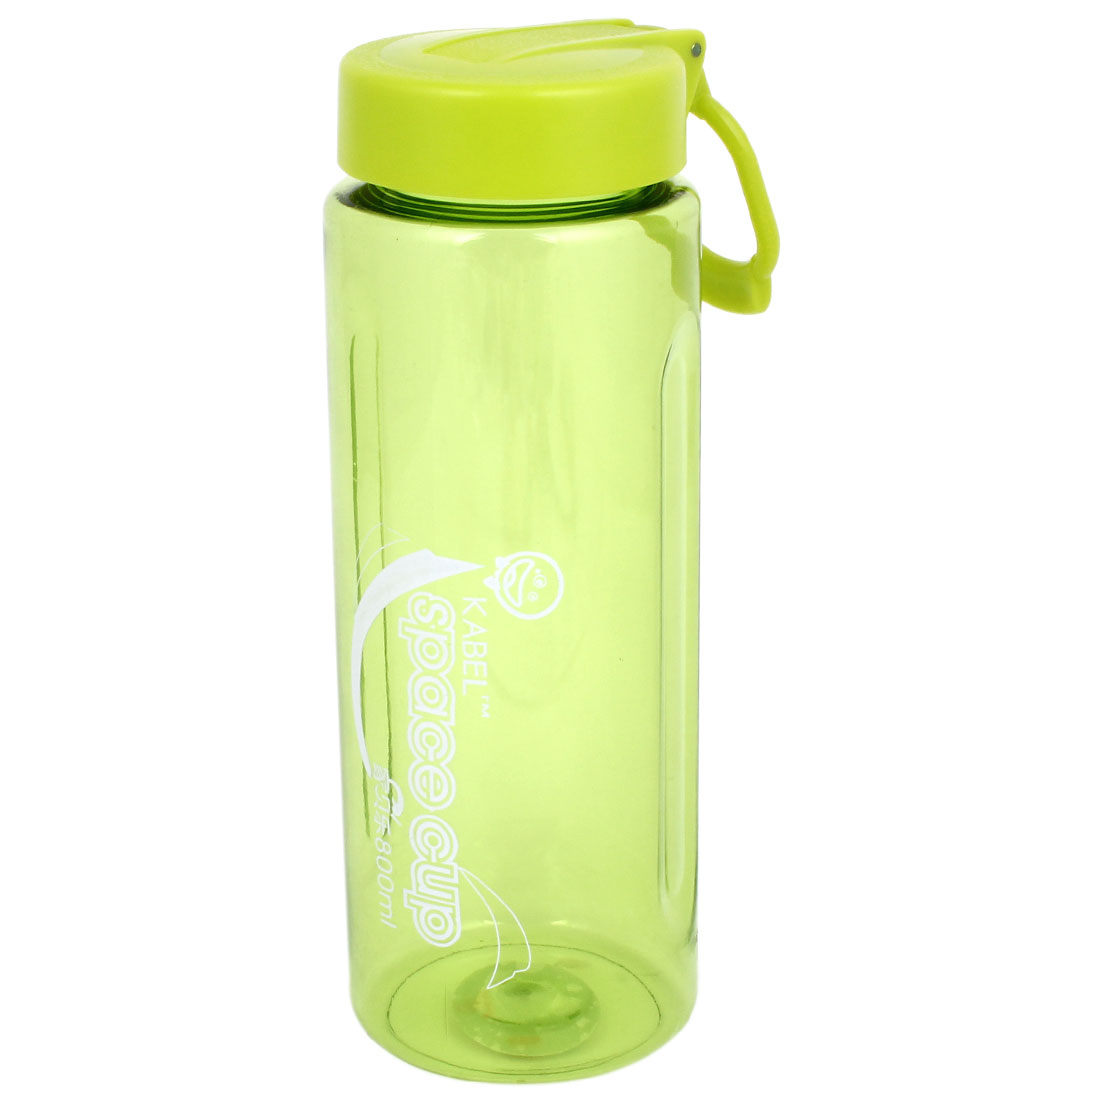 Plastic Clear Green Cylinder Shaped Drinking Water Bottle Holder 800ml